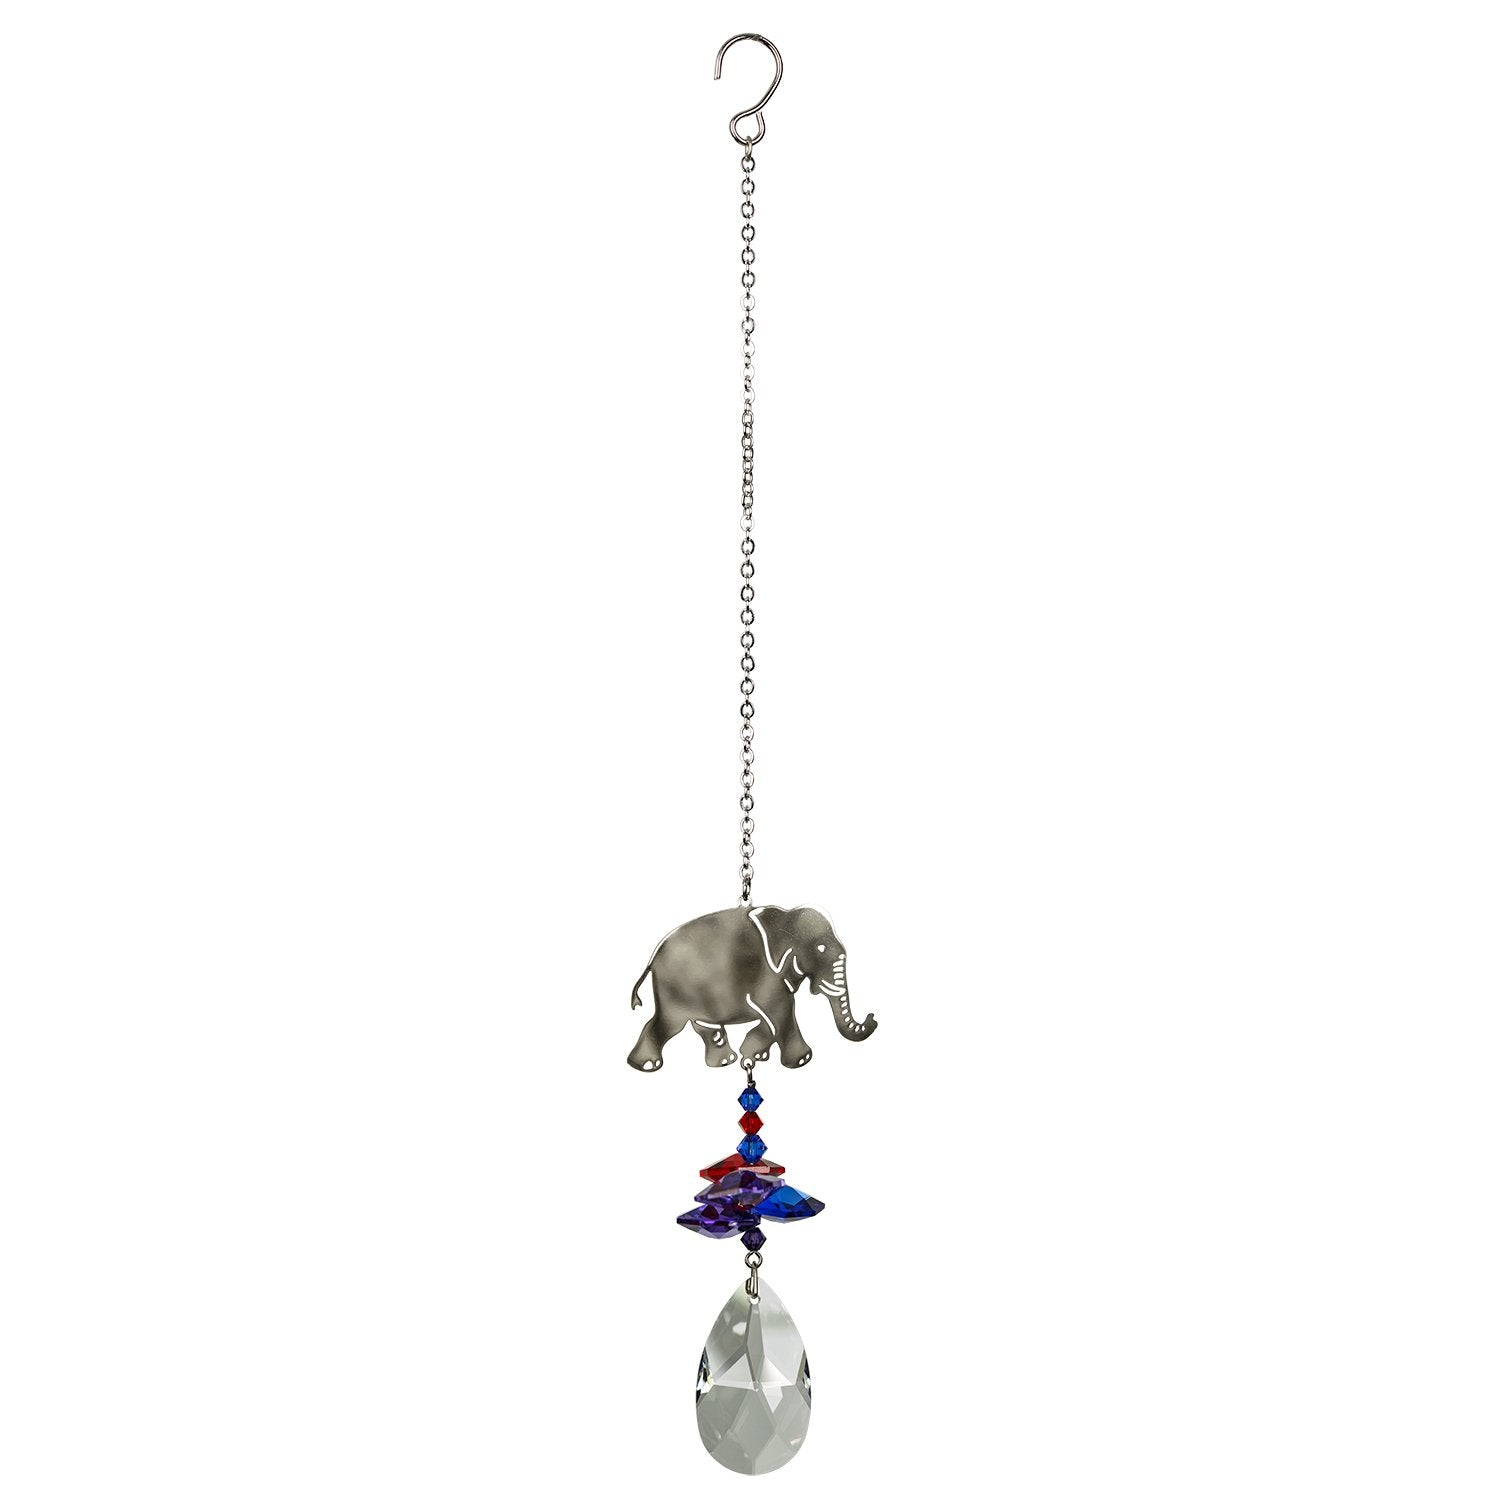 Crystal Fantasy Suncatcher - Elephant full product image